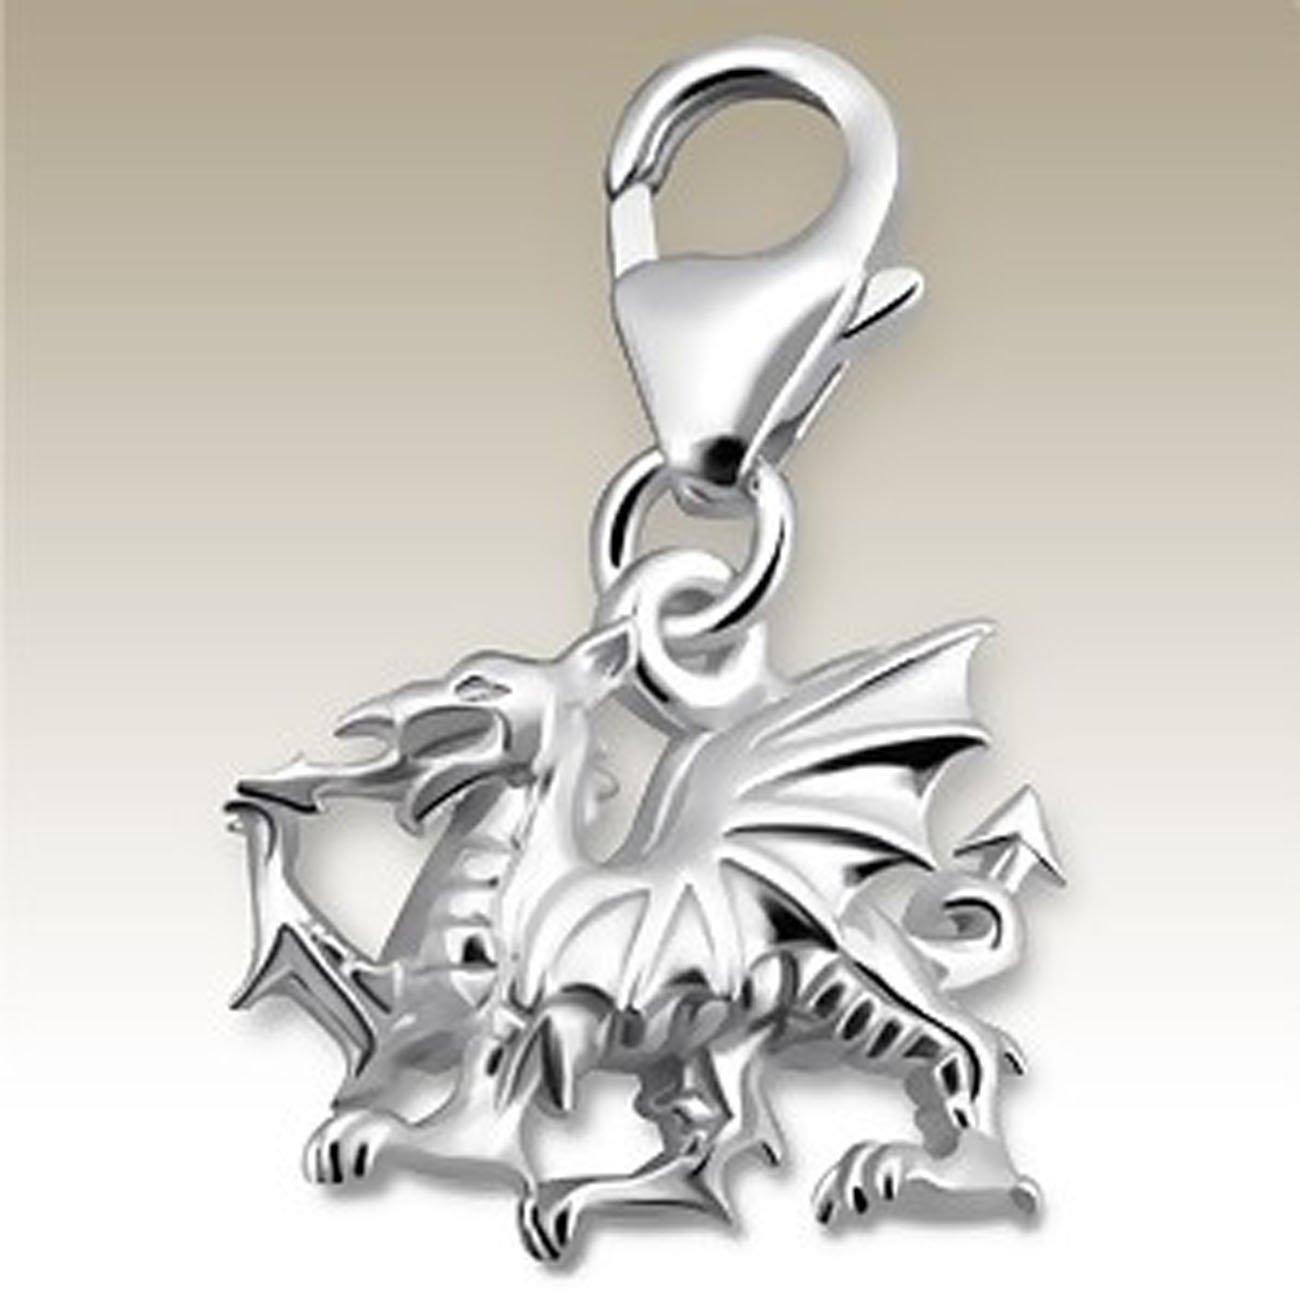 3D Dragon Charm with Lobster Clasp, Sterling Silver 925, for Charms Bracelet, Necklace (E14241)